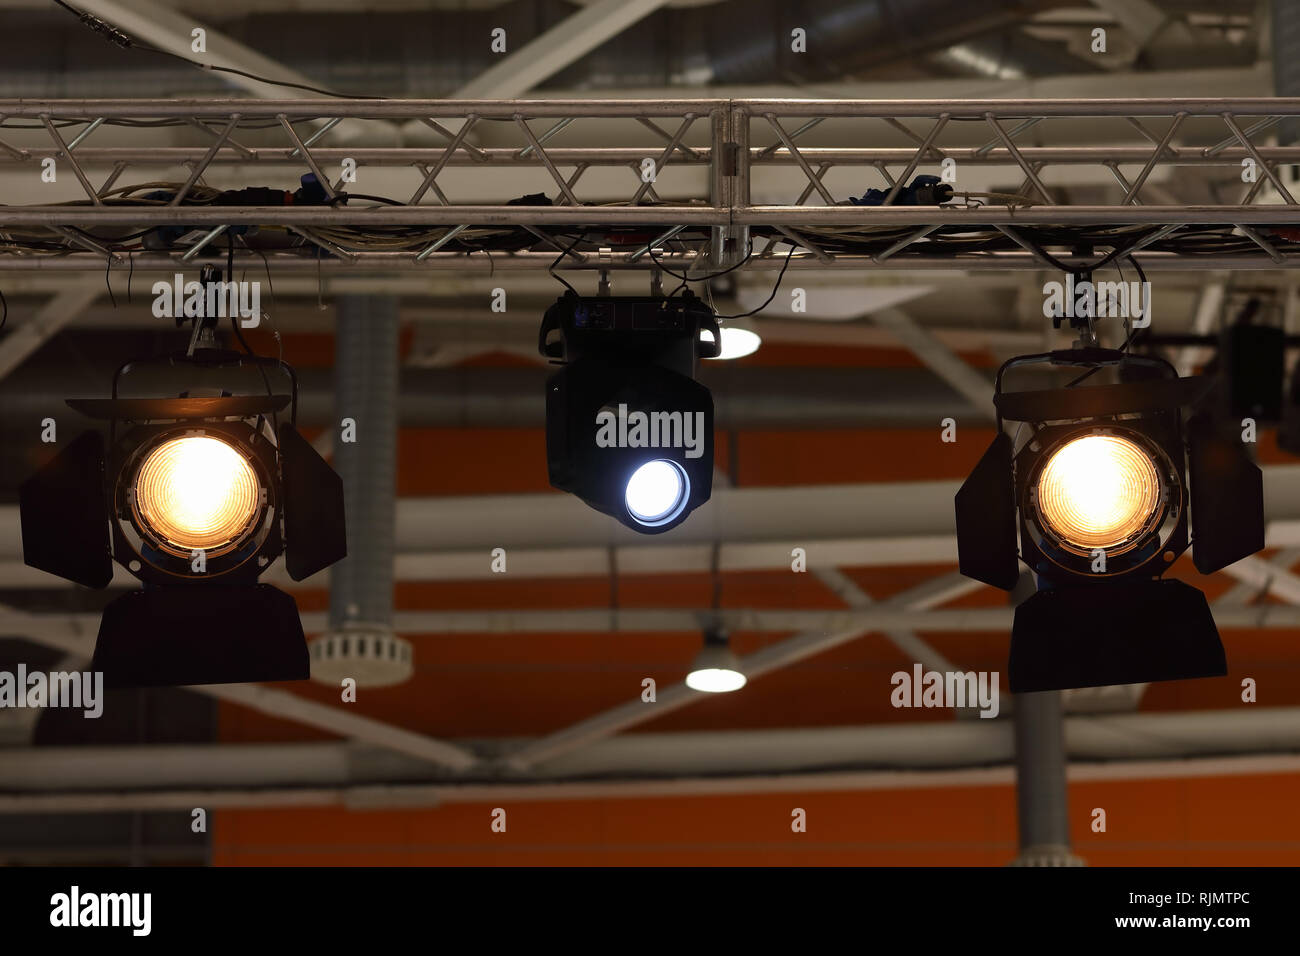 https www alamy com various stage lights hanging on a truss image235257076 html